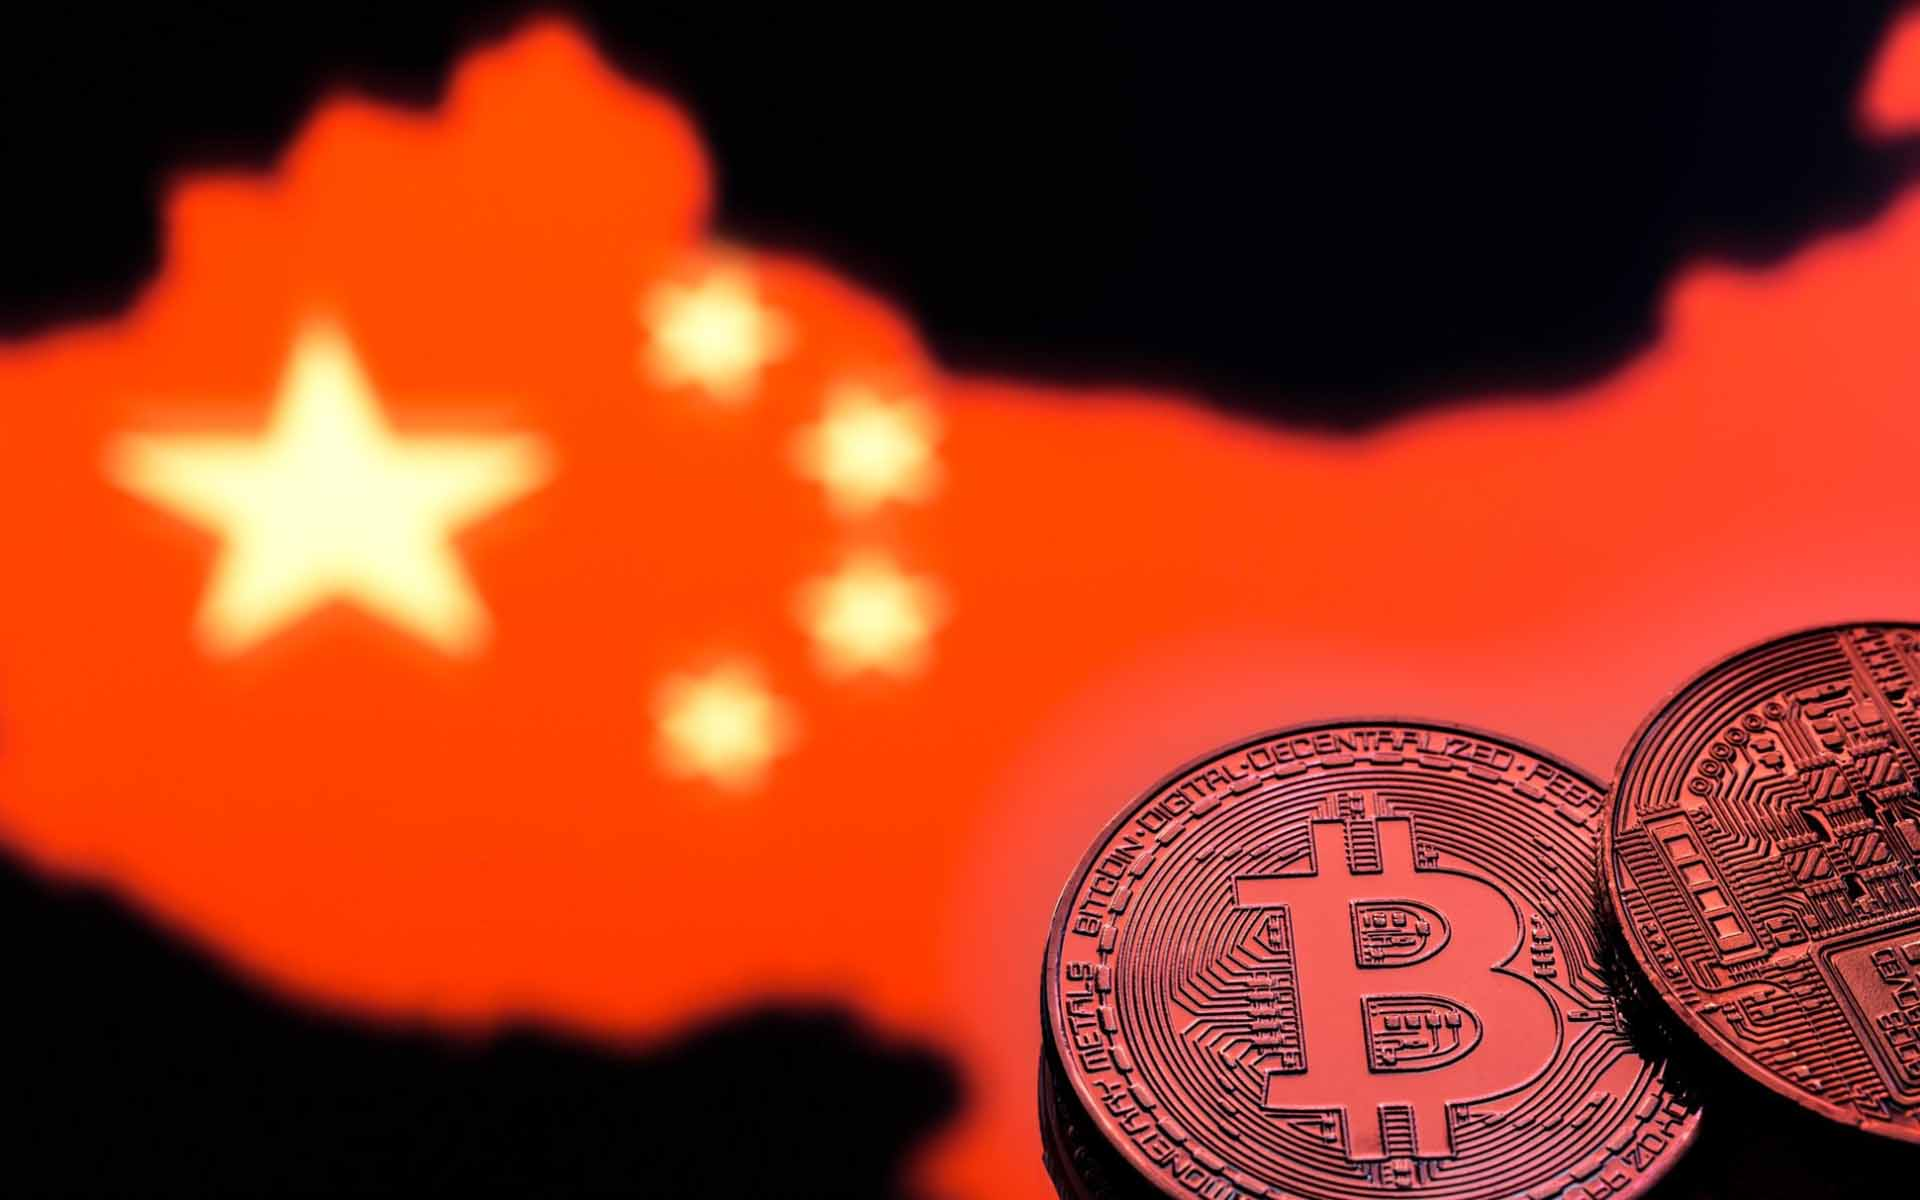 China is reconsidering its position on digital currency